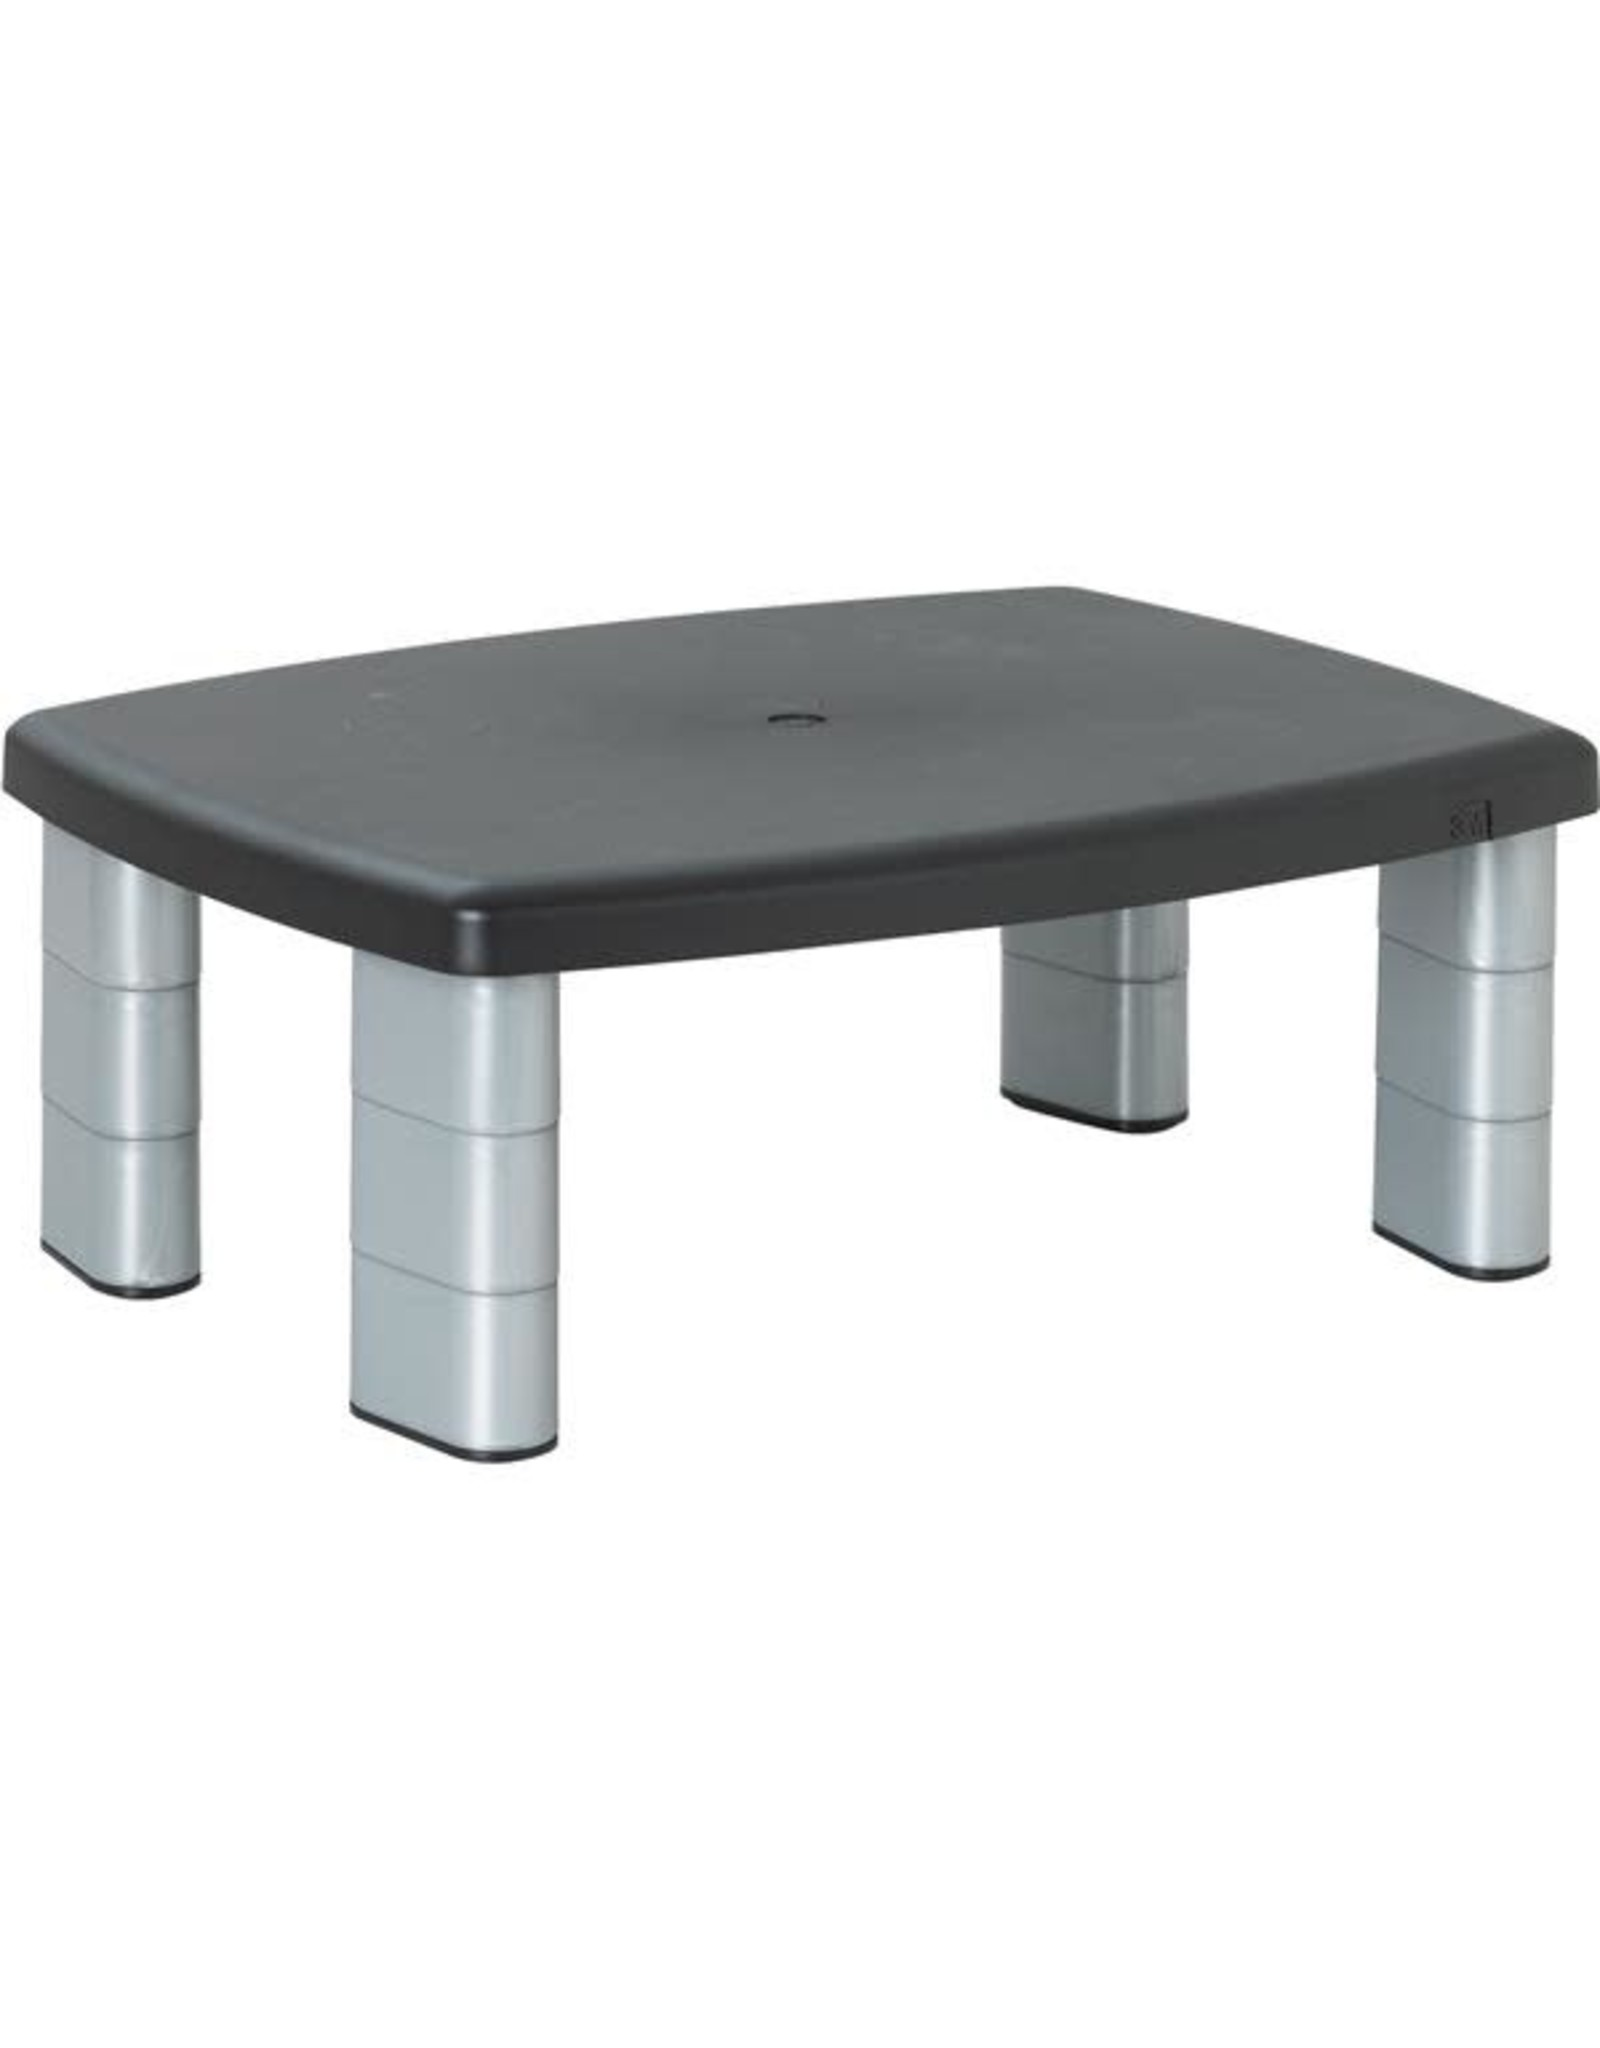 3M 3M Premium Adjustable Monitor Stand